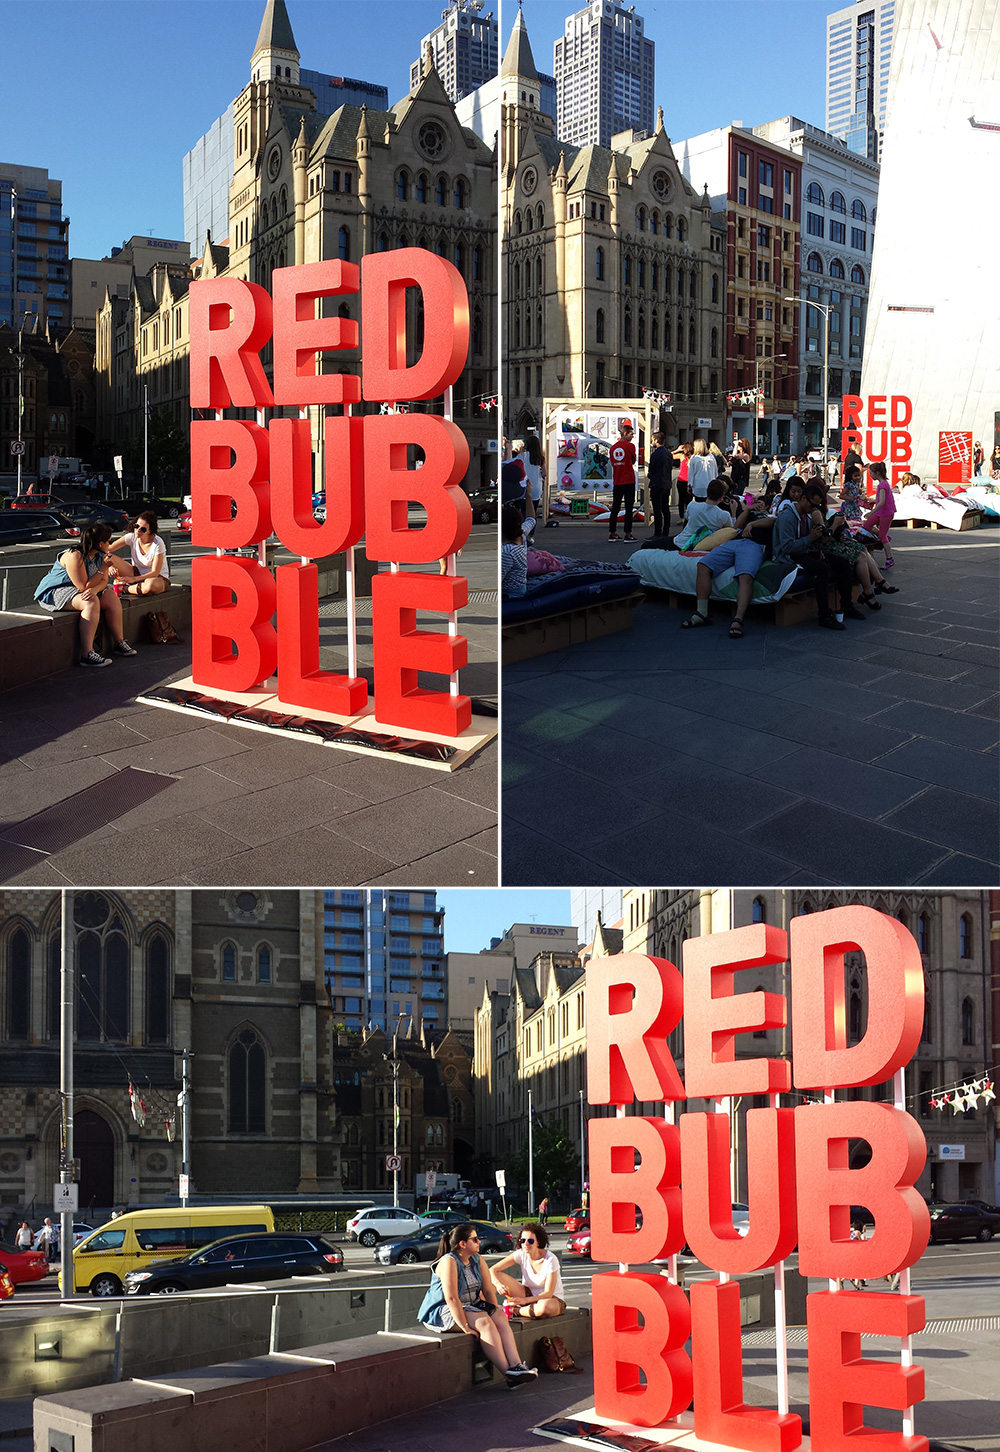 Photo on left: Montage of Redbubble's city-wide event ART+MEL in November 2015 at their Hub in Federation Square, Melbourne, featuring products with designs from 100+ of Redbubble designers (the beds the general public are lying all over are all covered by cushions and duvet covers by Redbubble artists as well).  Photo by The Shakespeare Shoppe Designer, Sally McLean.